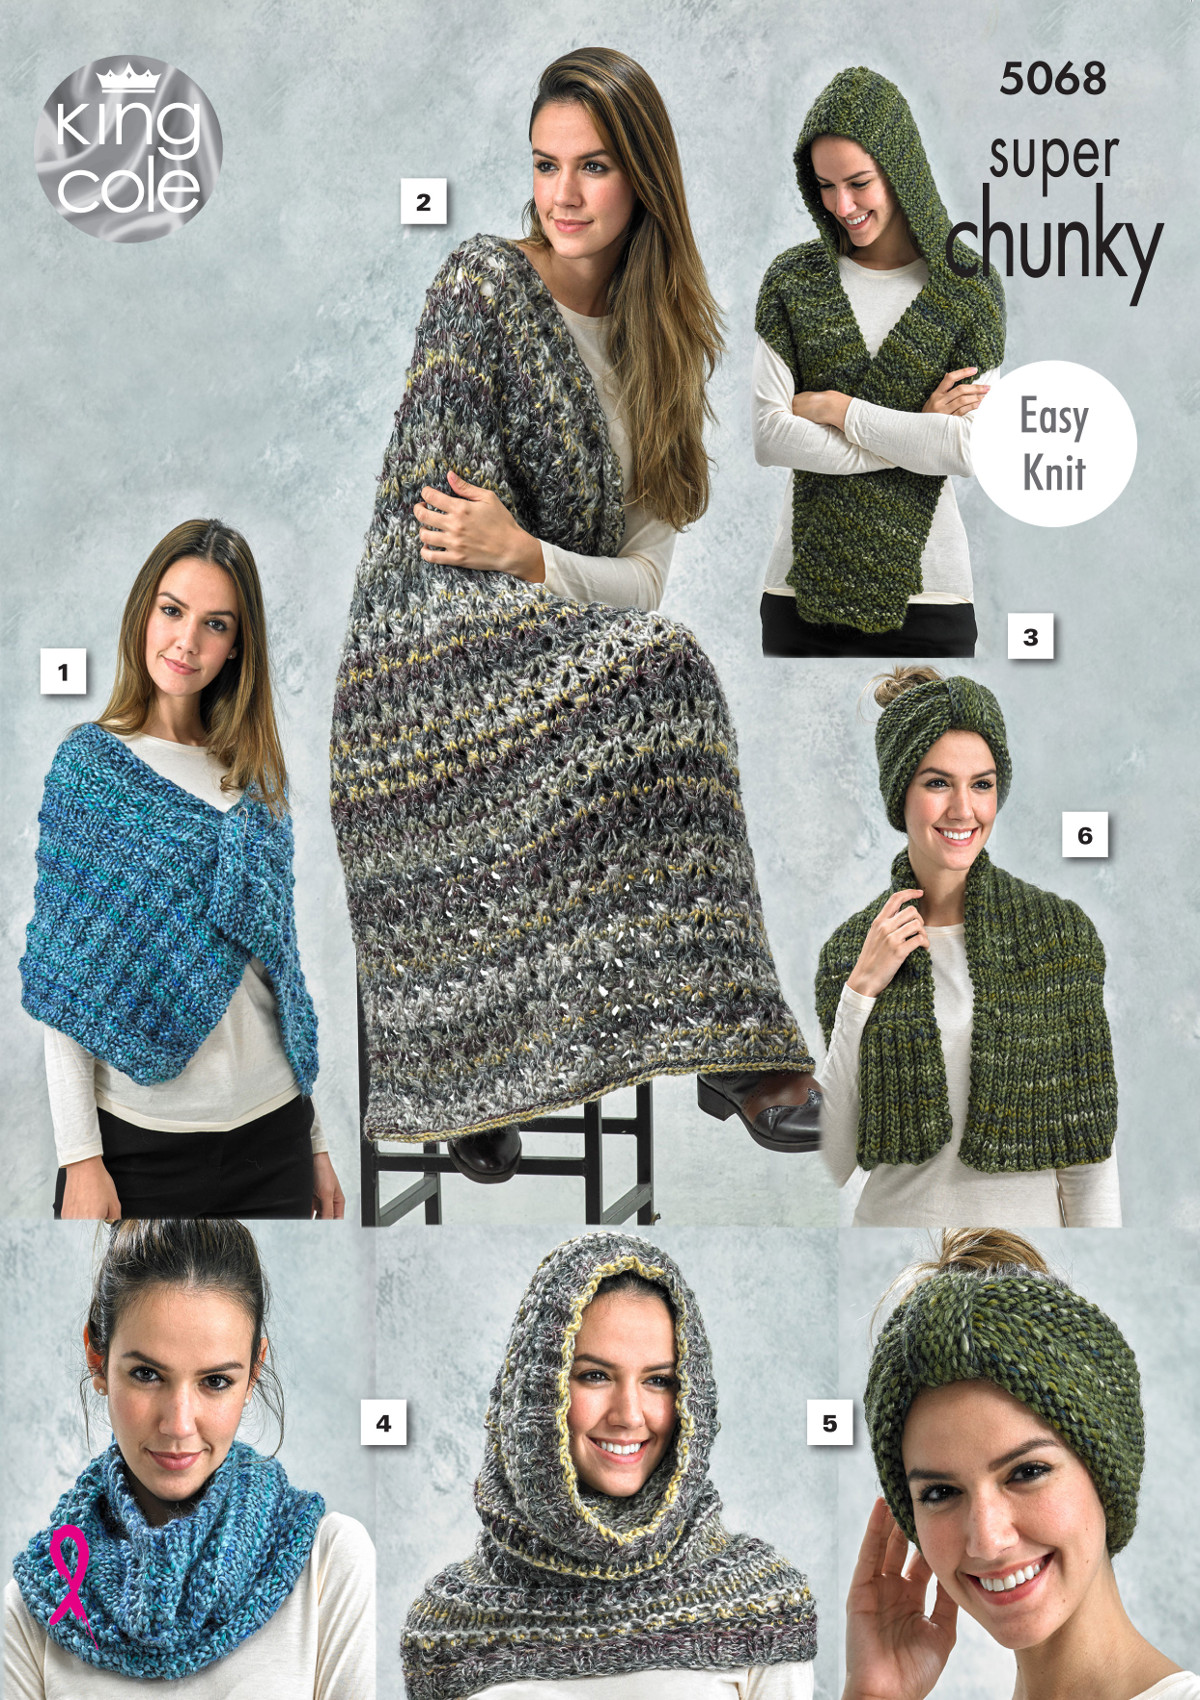 King Cole Ladies Super Chunky Knitting Pattern Easy Knit Wrap ...